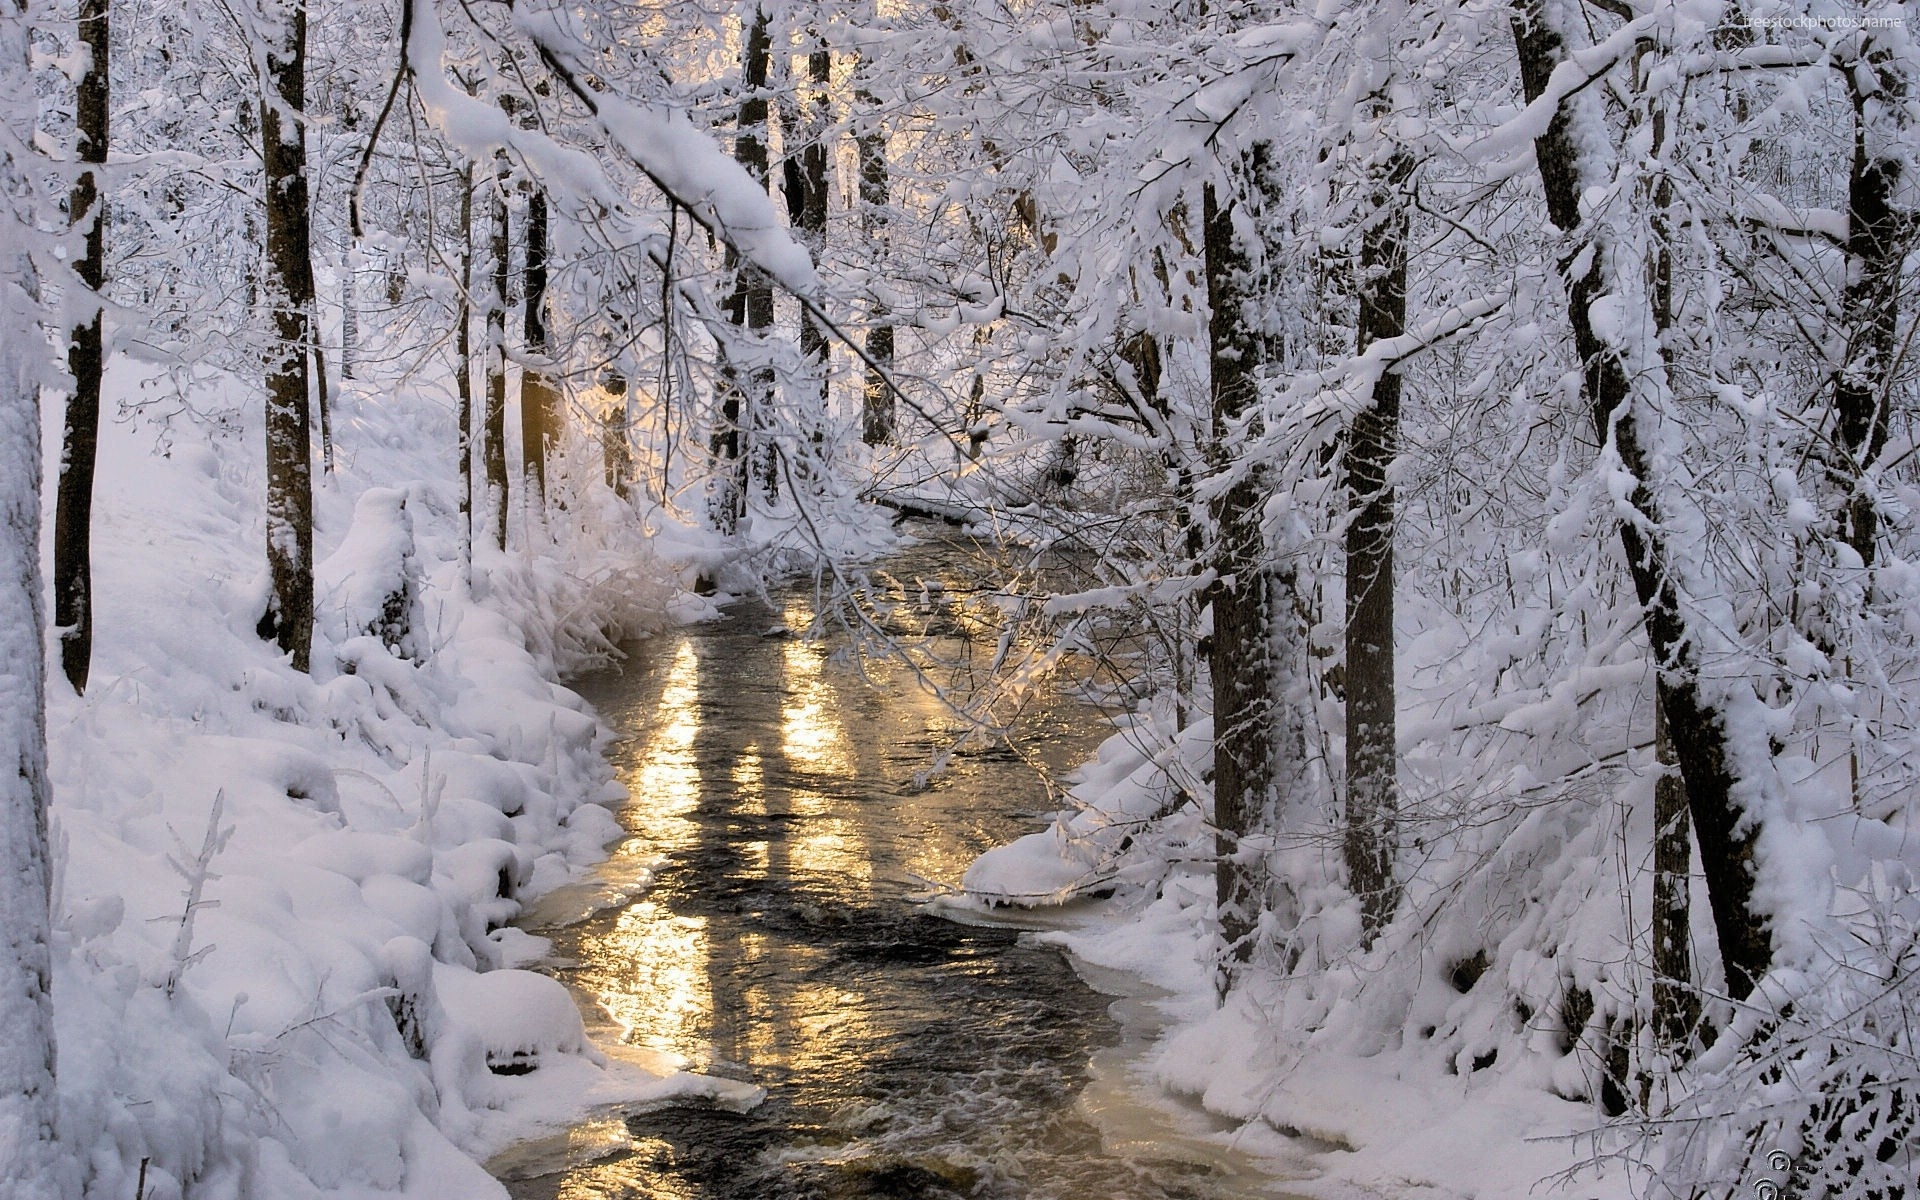 Download Stock Photos of creek and snowy trees nature 1920x1200